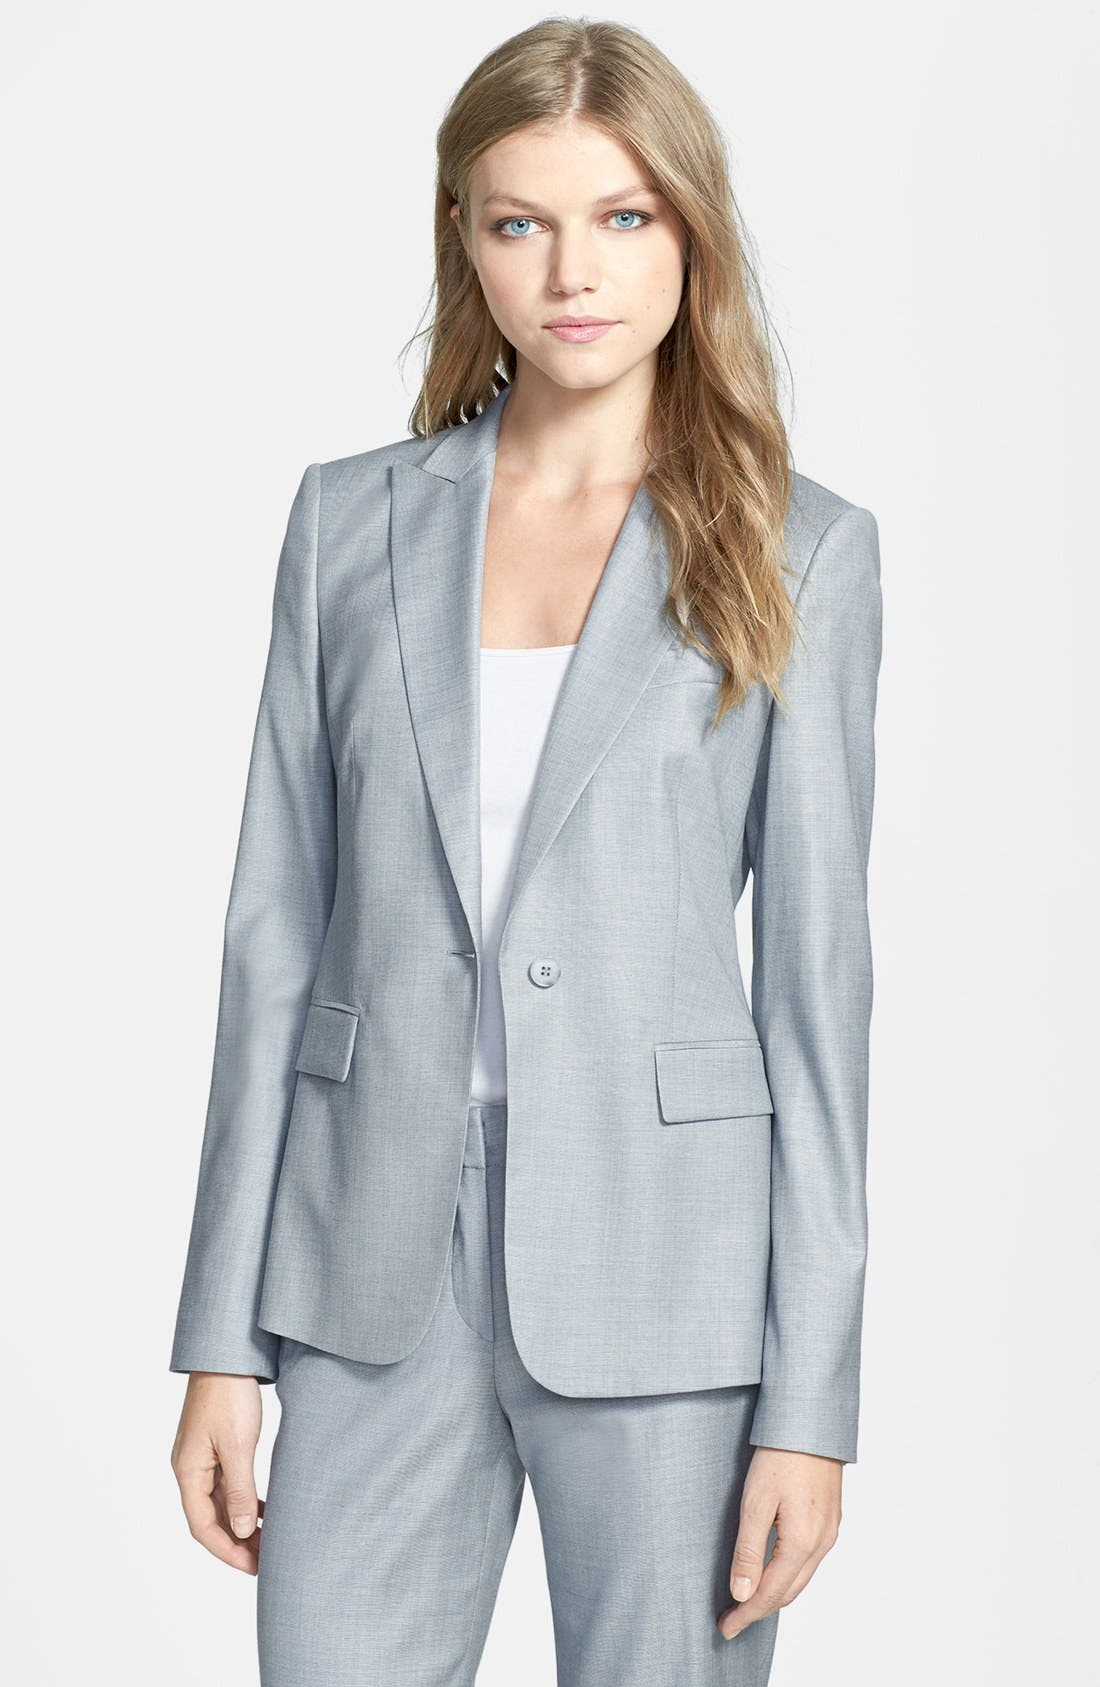 Alternate Image 1 Selected - BOSS HUGO BOSS 'Juicy 6' Stretch Wool Jacket